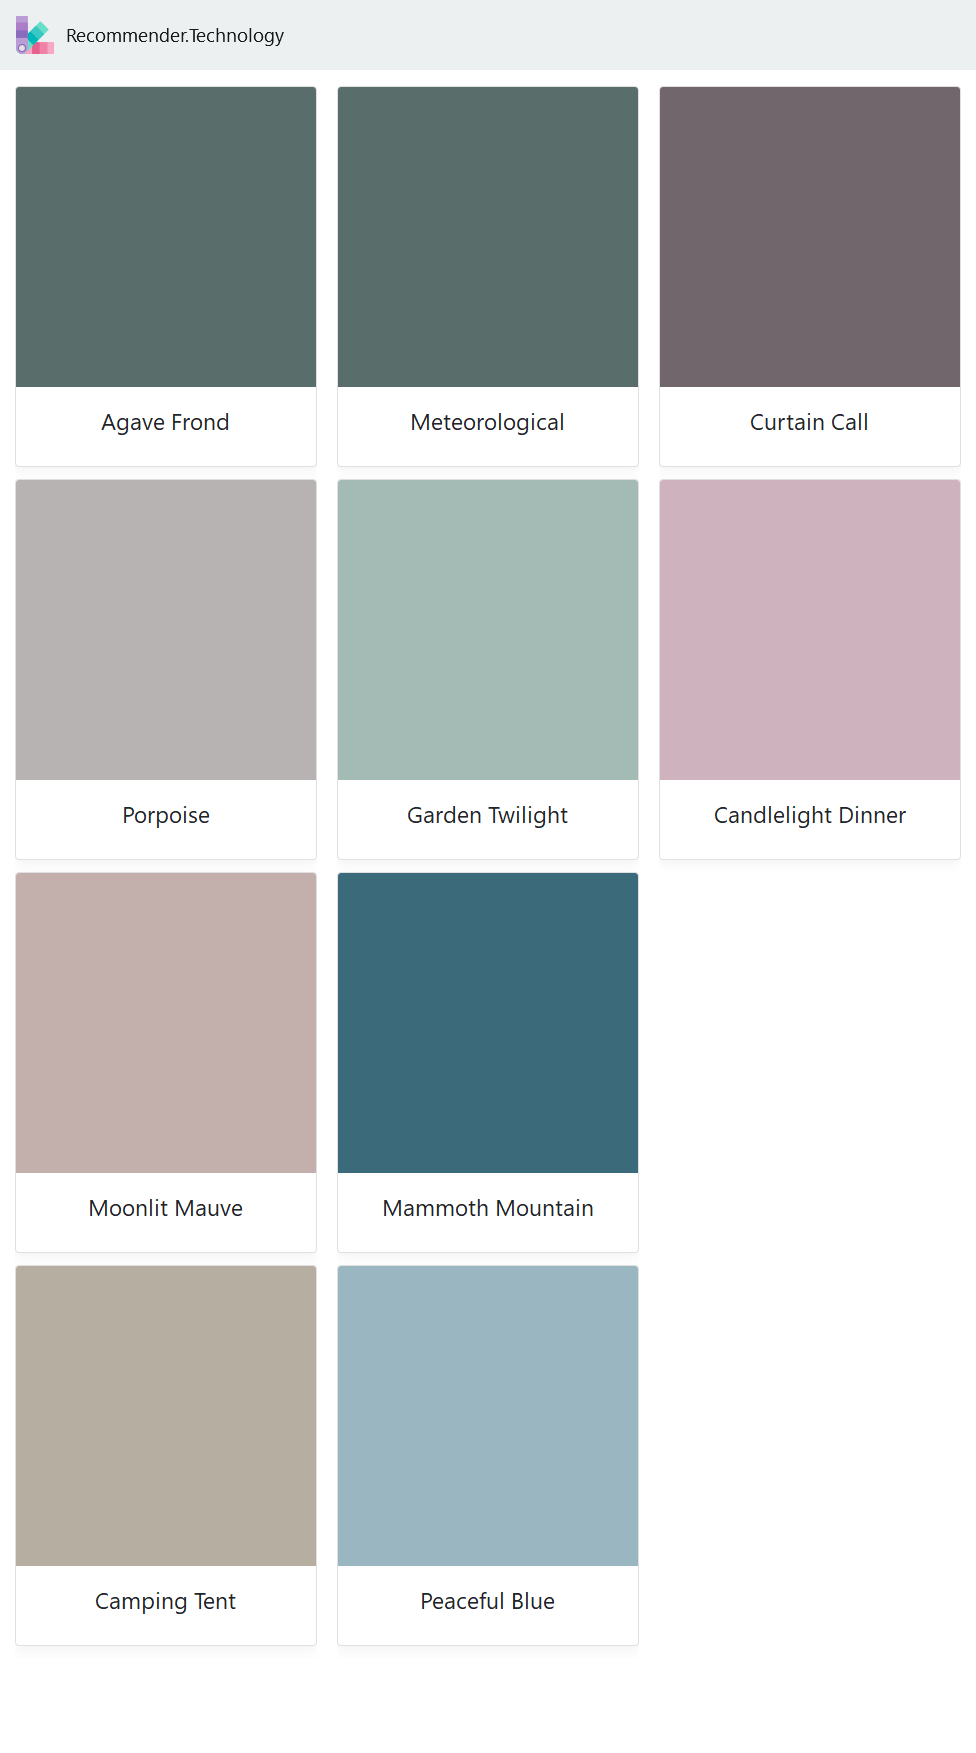 Agave Frond Porpoise Moonlit Mauve Camping Tent Meteorological Garden Twilight Mammoth Mountain Peac Behr Paint Colors Paint Colors Paint Color Palettes [ 1753 x 976 Pixel ]